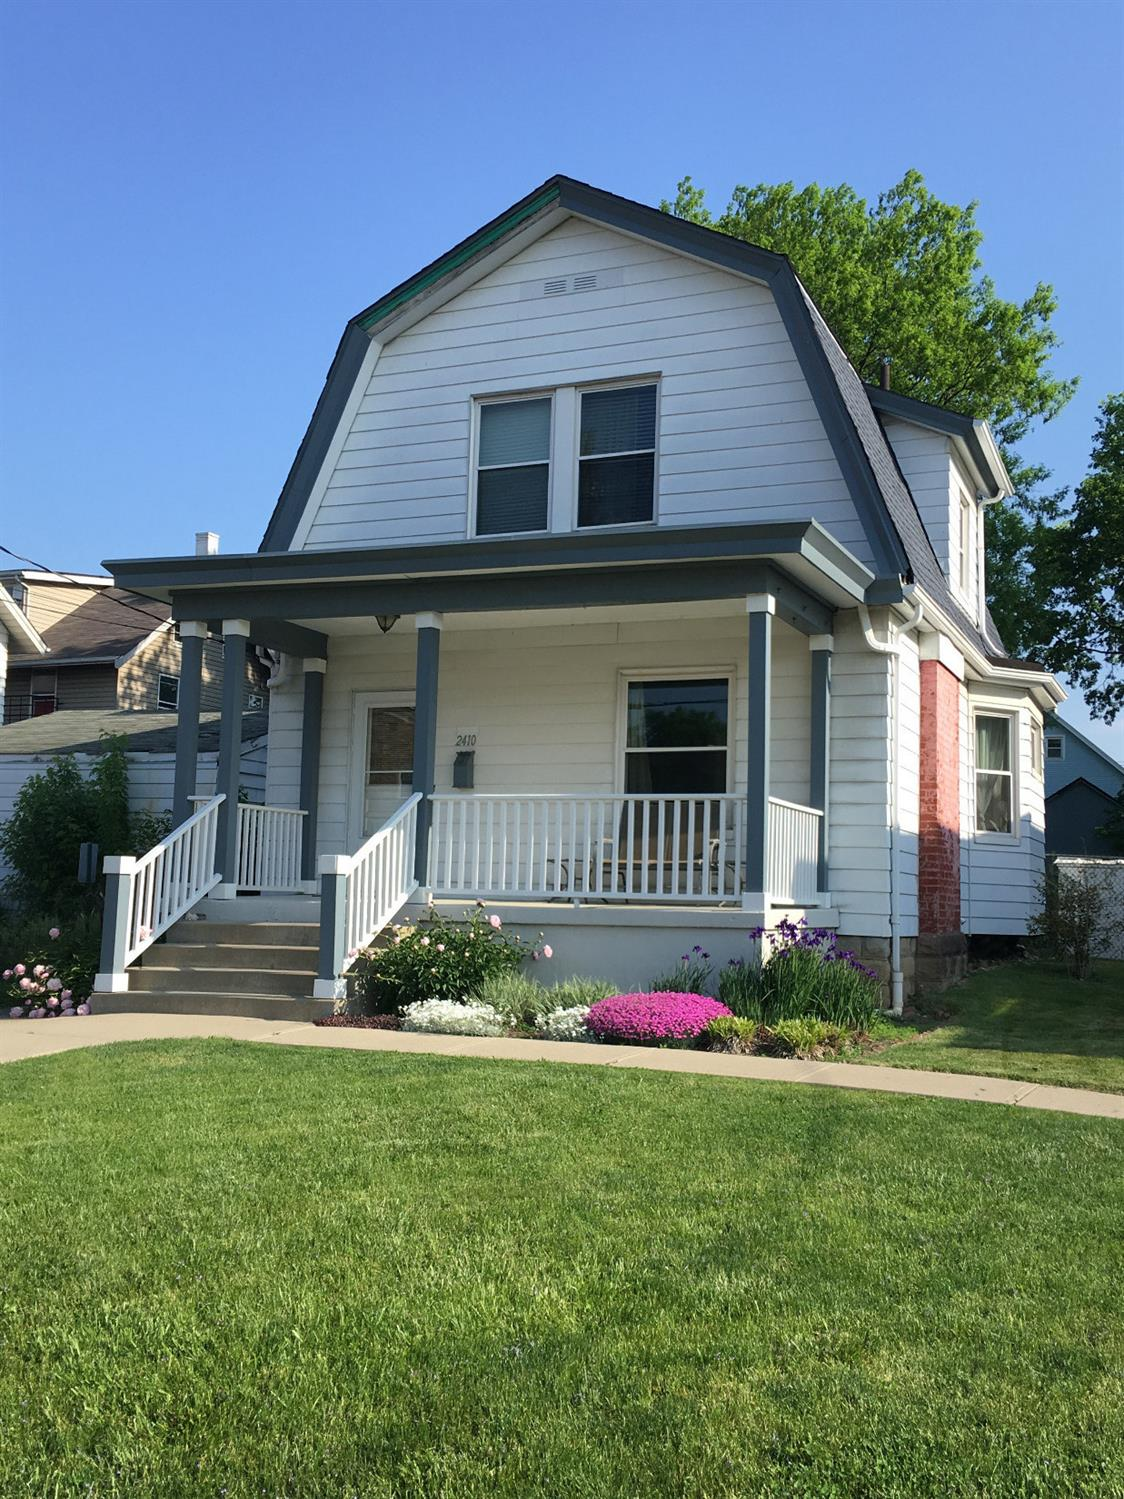 Property for sale at 2410 Robertson Avenue, Norwood,  OH 45212